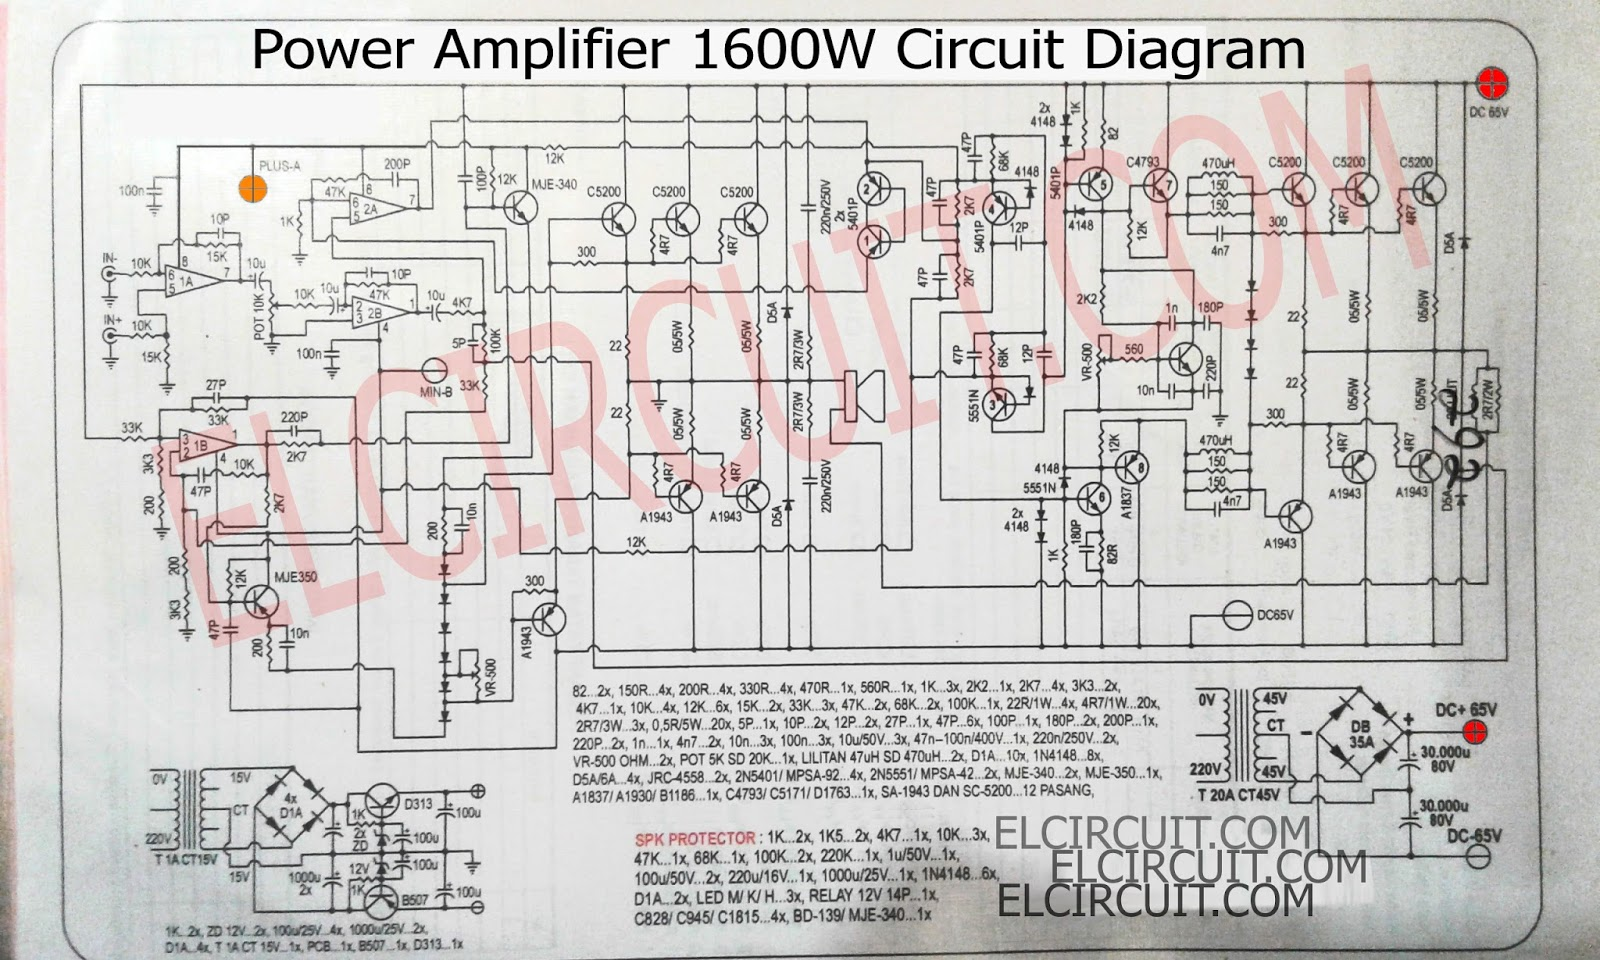 1600W%2BPower%2BAmplifier%2BCircuit%2BDiagram 1600w high power amplifier circuit complete pcb layout amplifier schematic diagram at panicattacktreatment.co